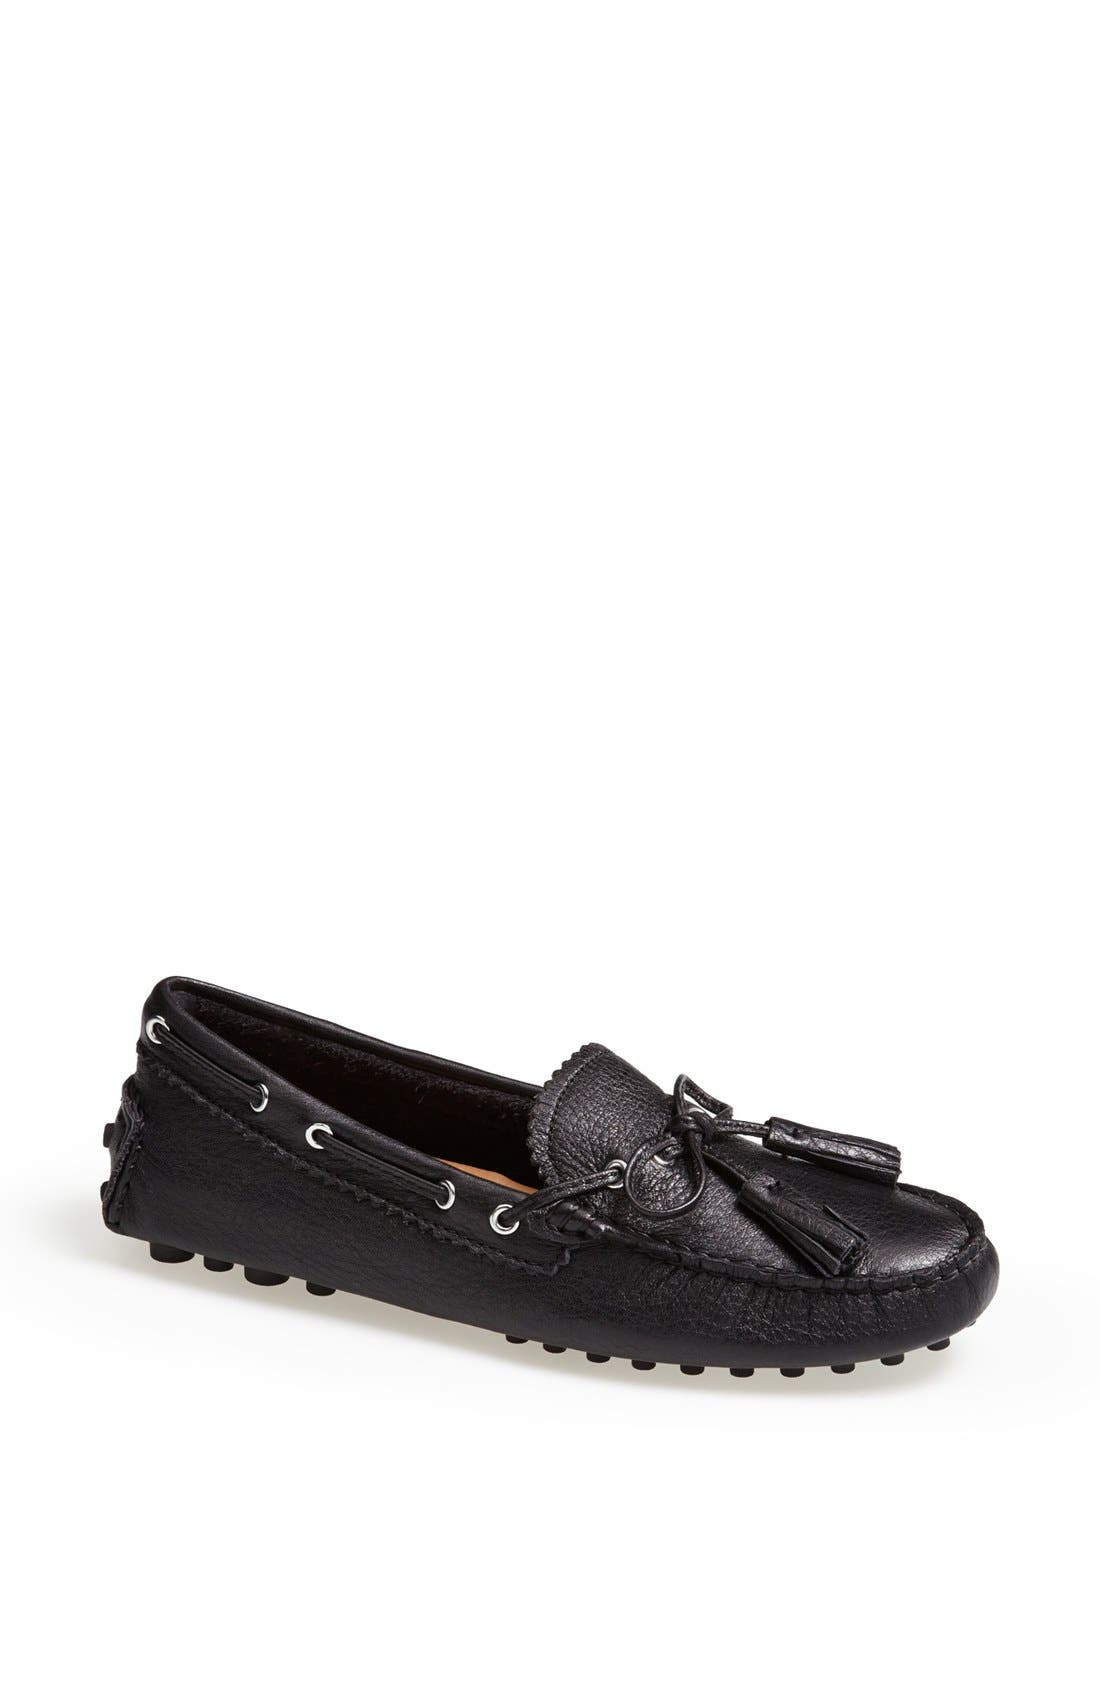 'Nadia' Leather Driving Loafer, Main, color, 001